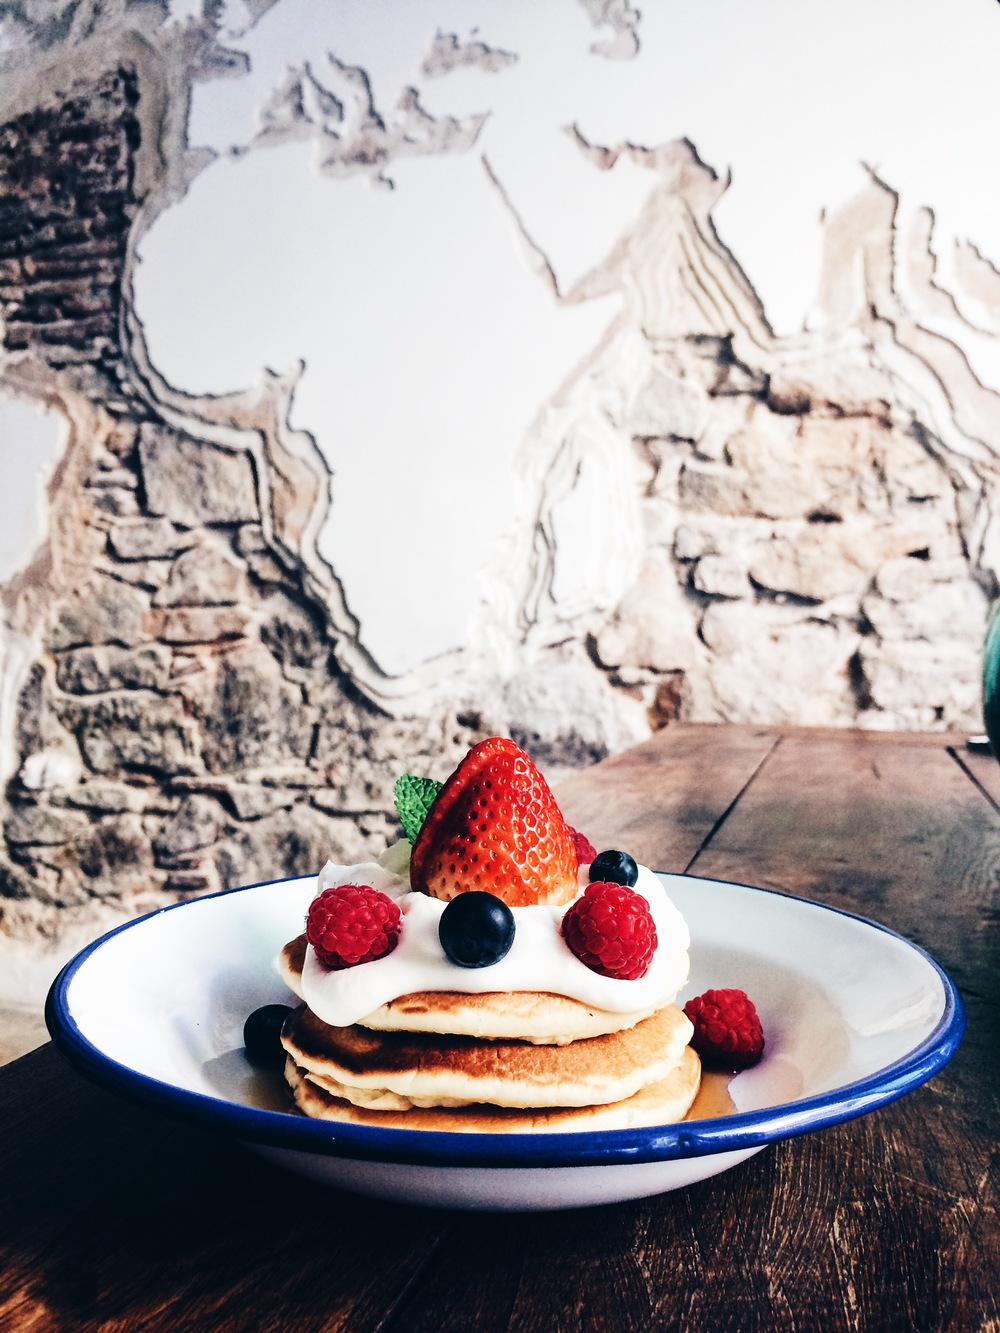 Pancakes with cream cheese frosting, berries and maple syrup at Tropico, Barcelona